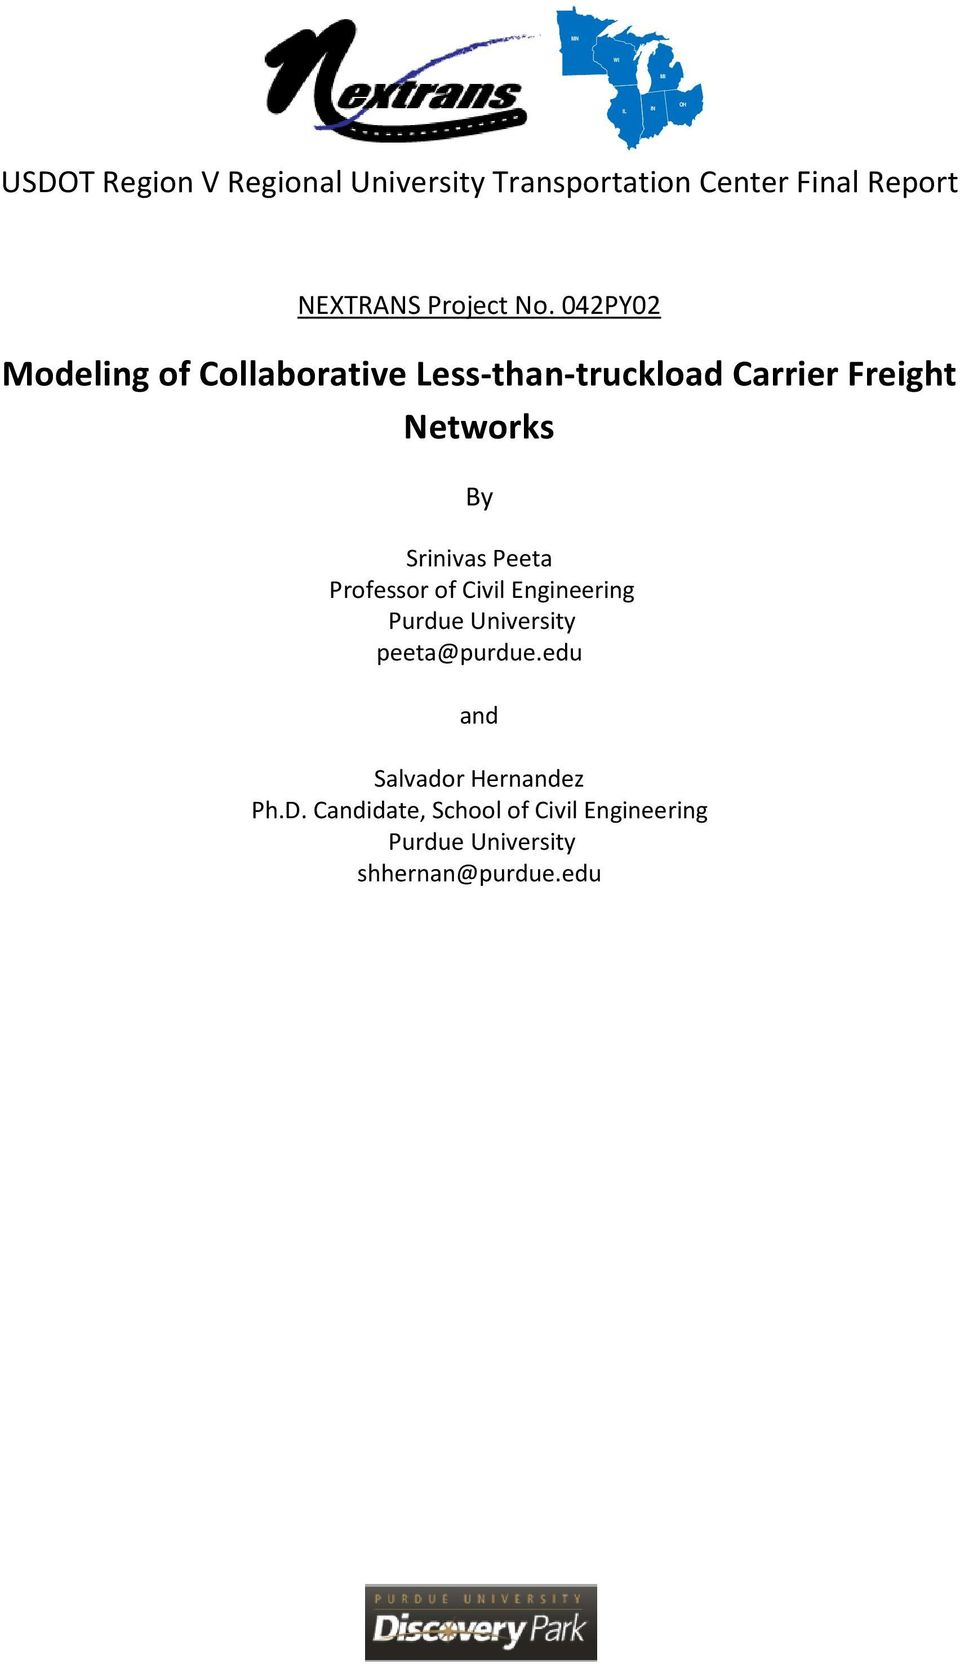 042PY02 Modeling of Collaborative Less-than-truckload Carrier Freight Networks By Srinivas